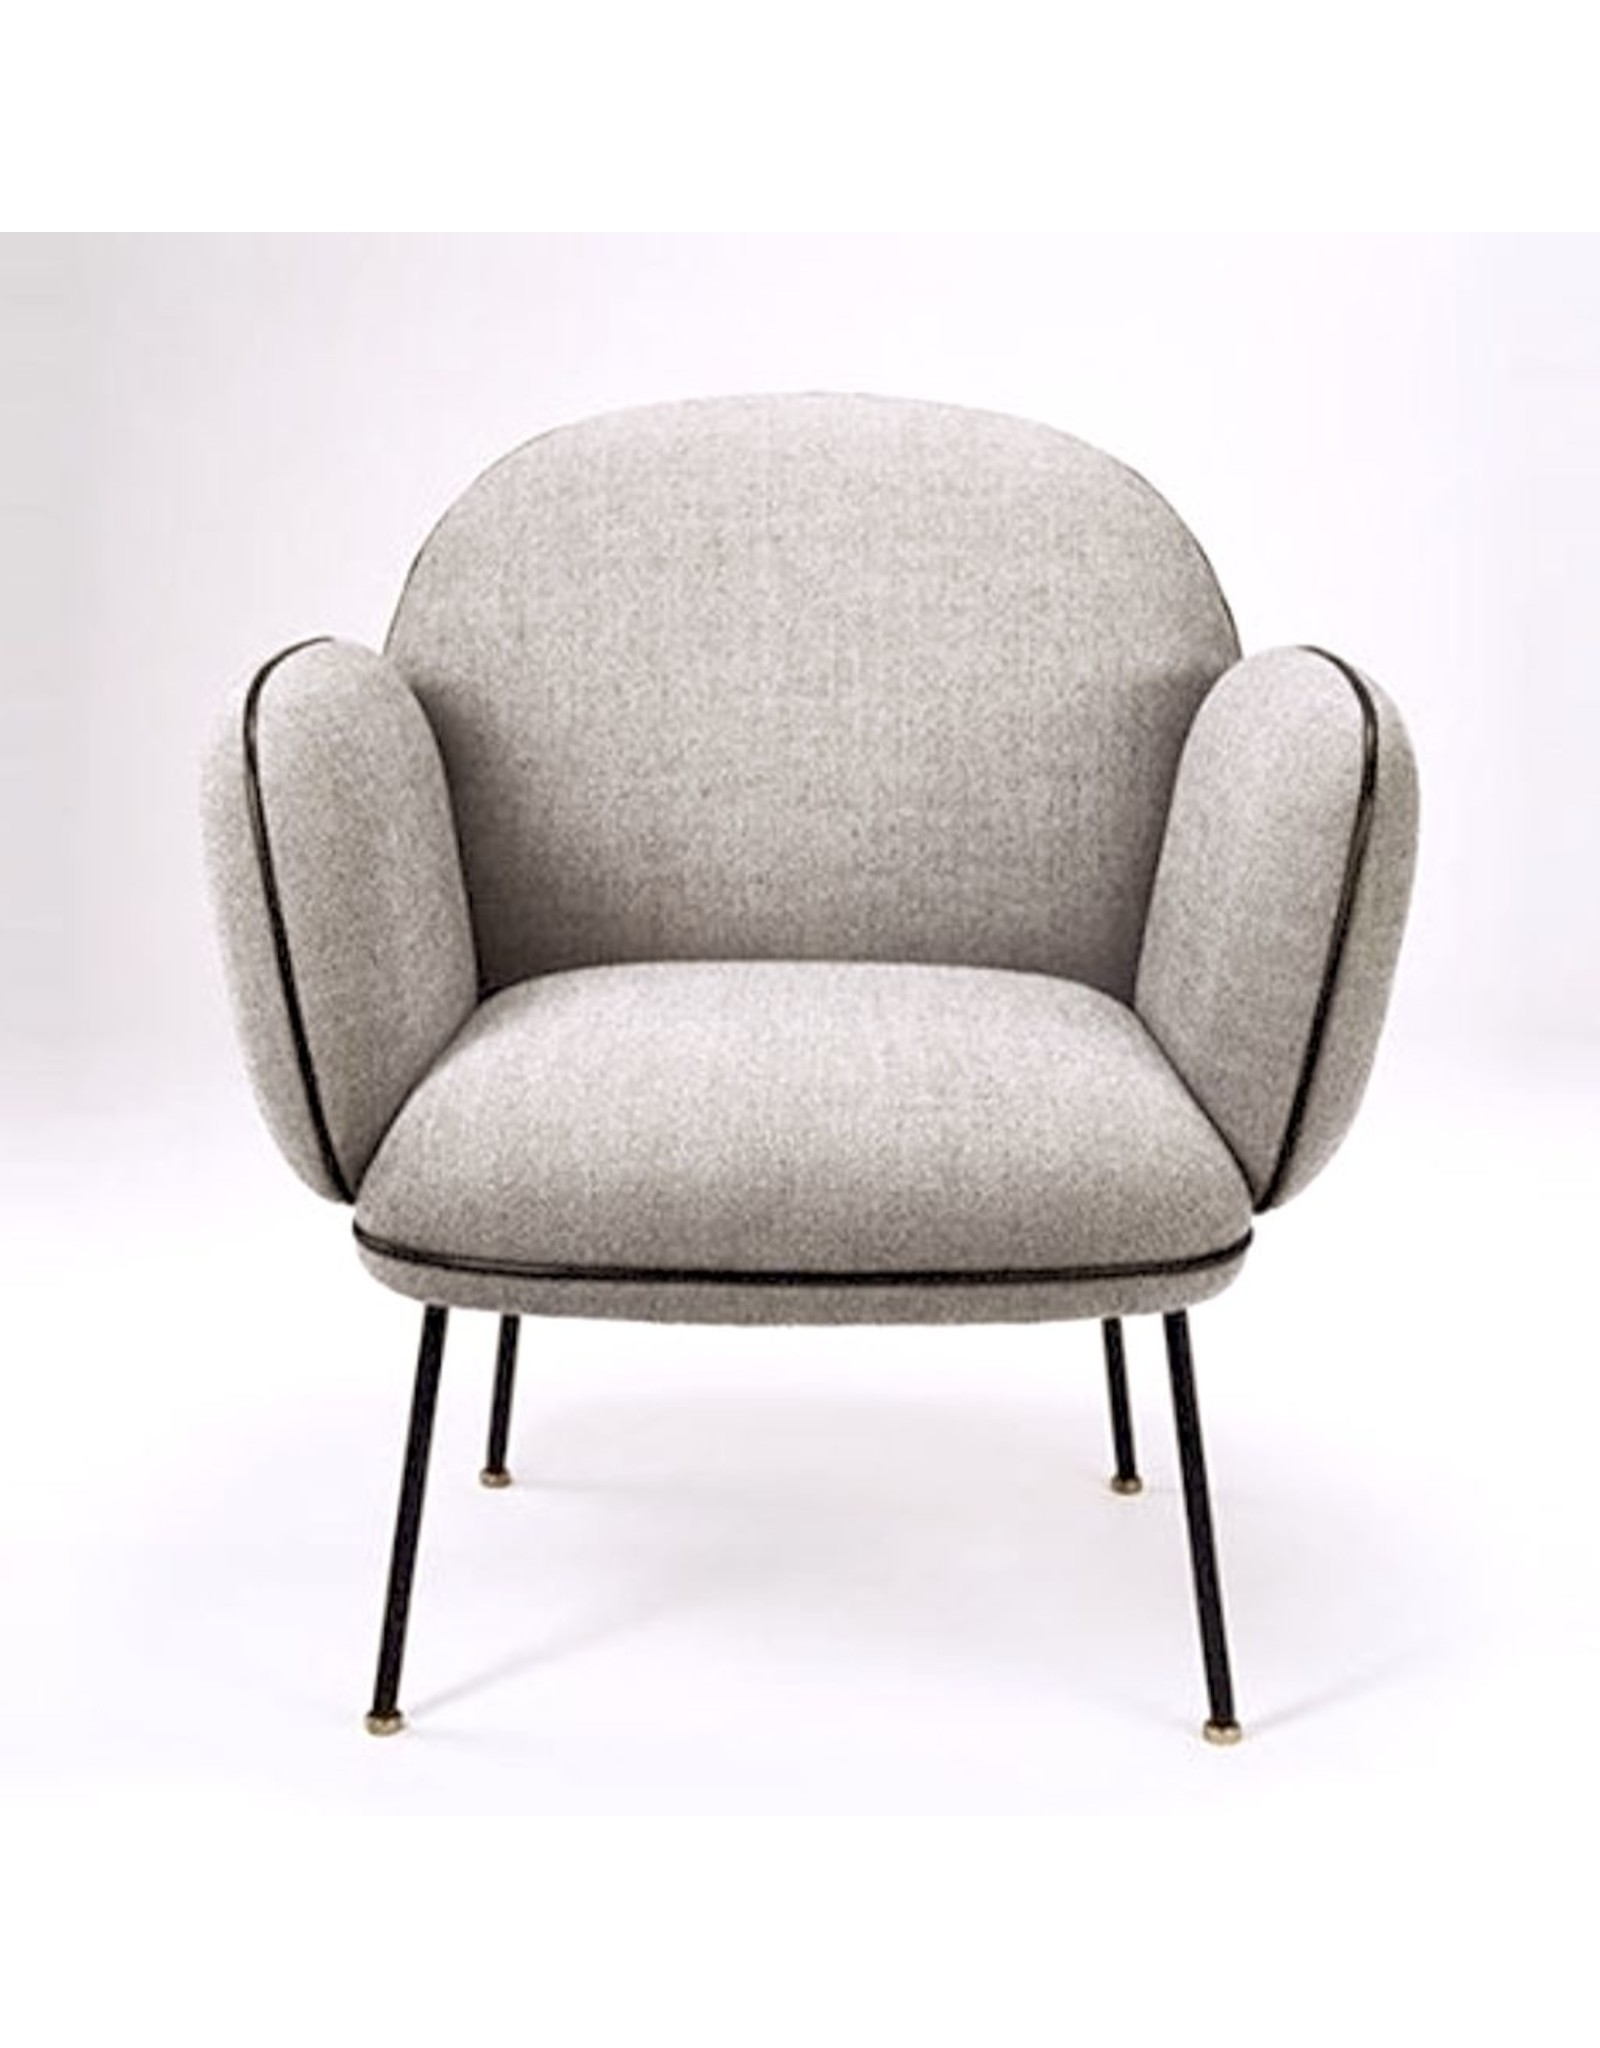 WON DESIGN OLLIE LOUNGE CHAIR IN DUSTY GREY